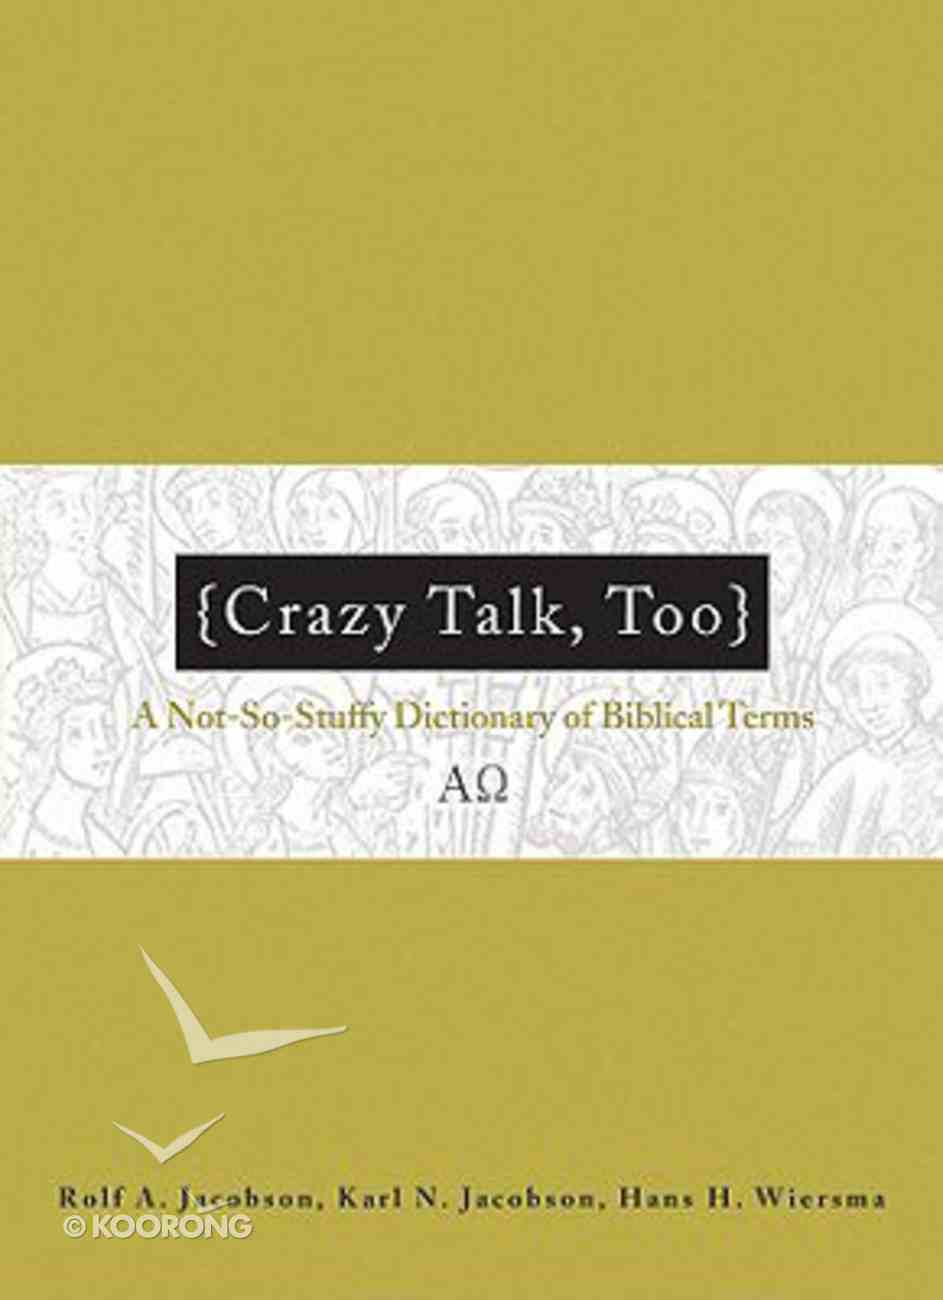 Crazy Book: A Not-So-Stuffy Dictionary of Biblical Terms Paperback